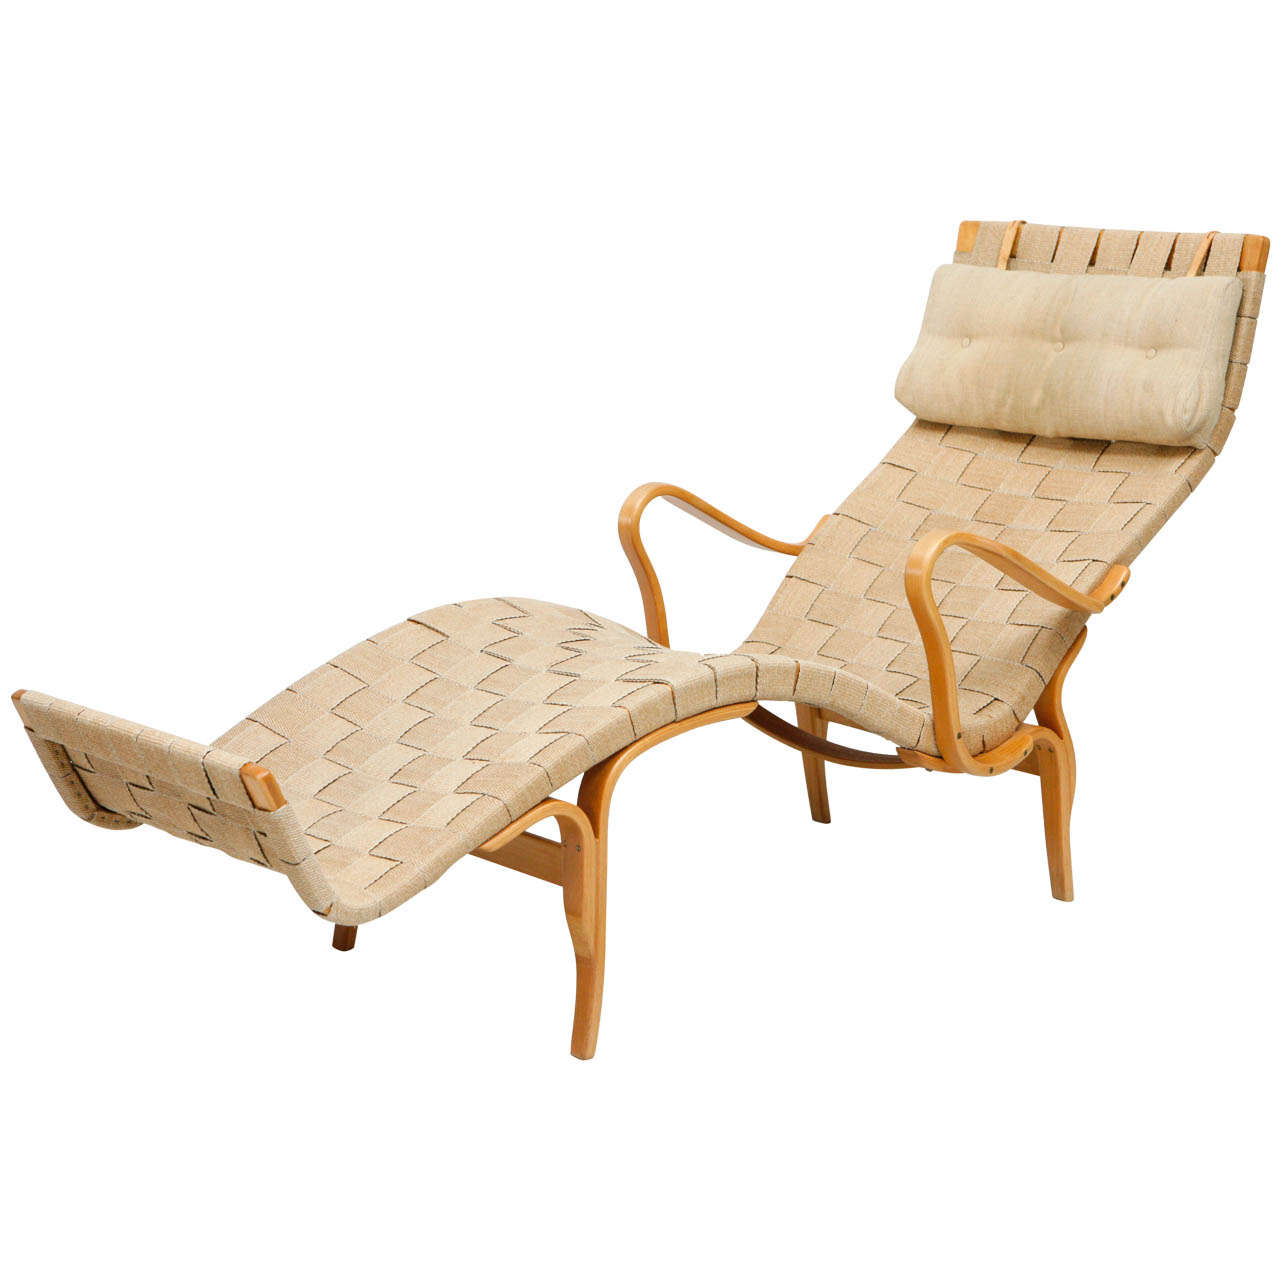 for Chaise longue furniture